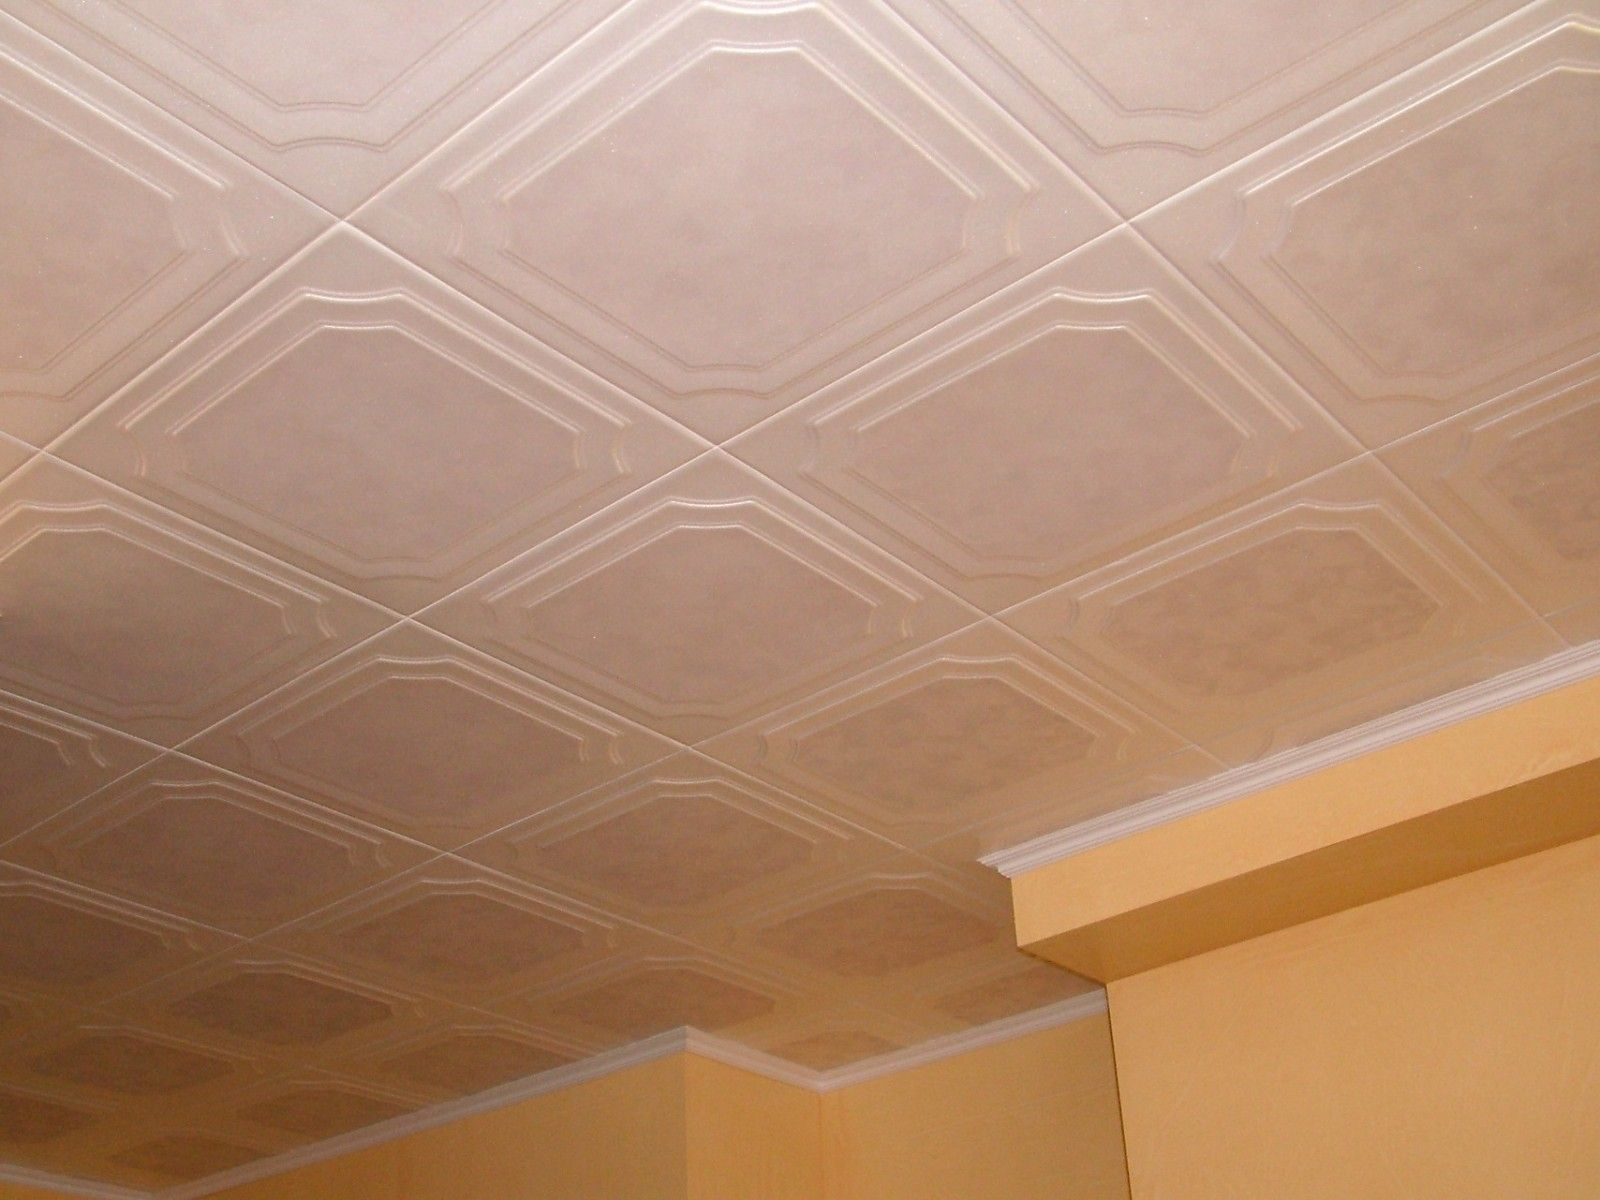 Expanded Polystyrene Tiles (Styrofoam tiles) Ceiling FInishing. Real photo example